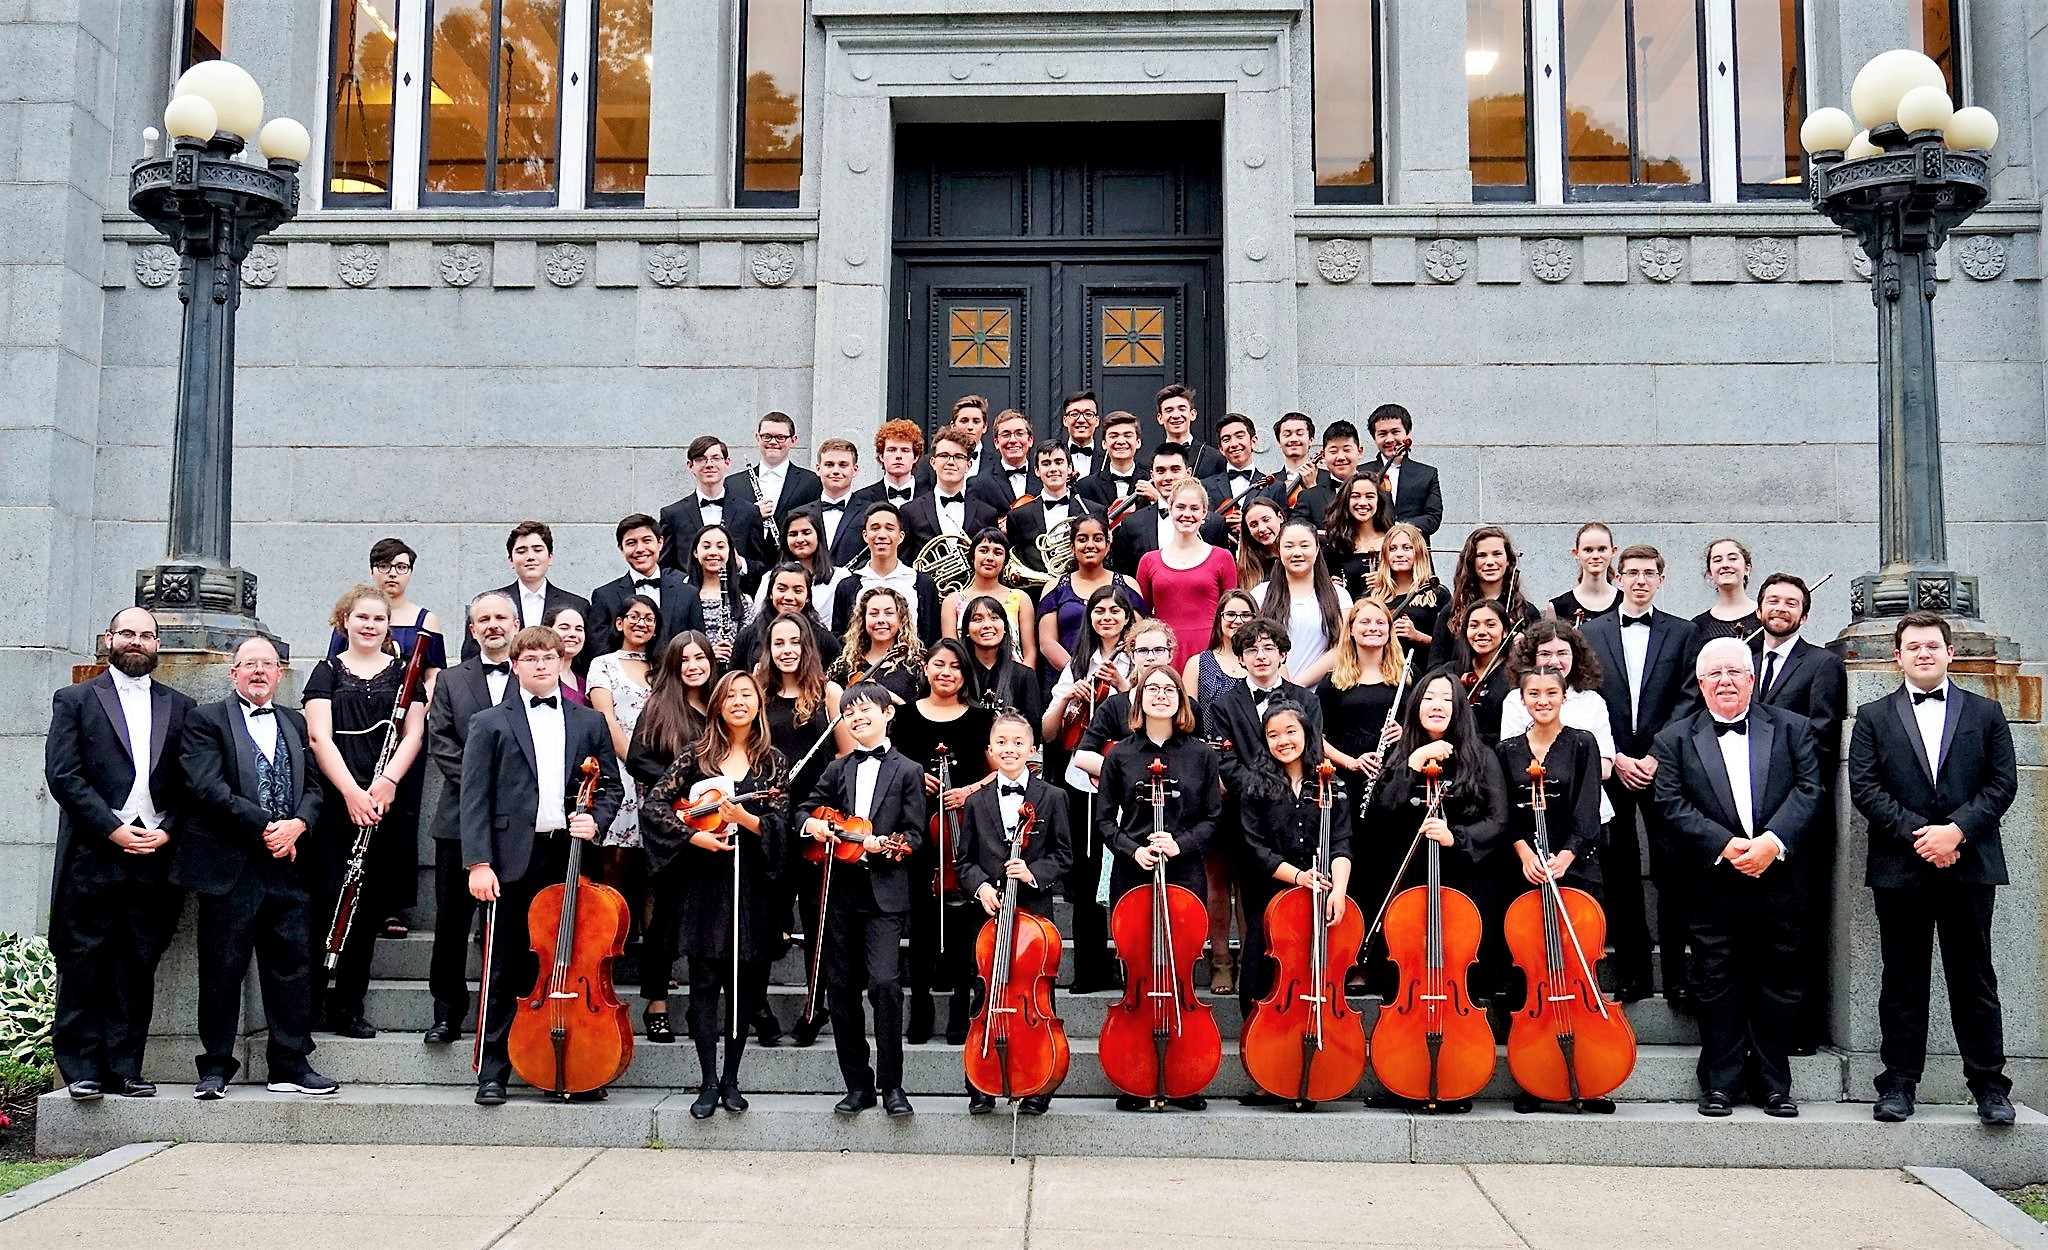 Members of The Claflin Hill Youth Symphonies joined with The Napa Valley Youth Symphony, Melrose, June 2018